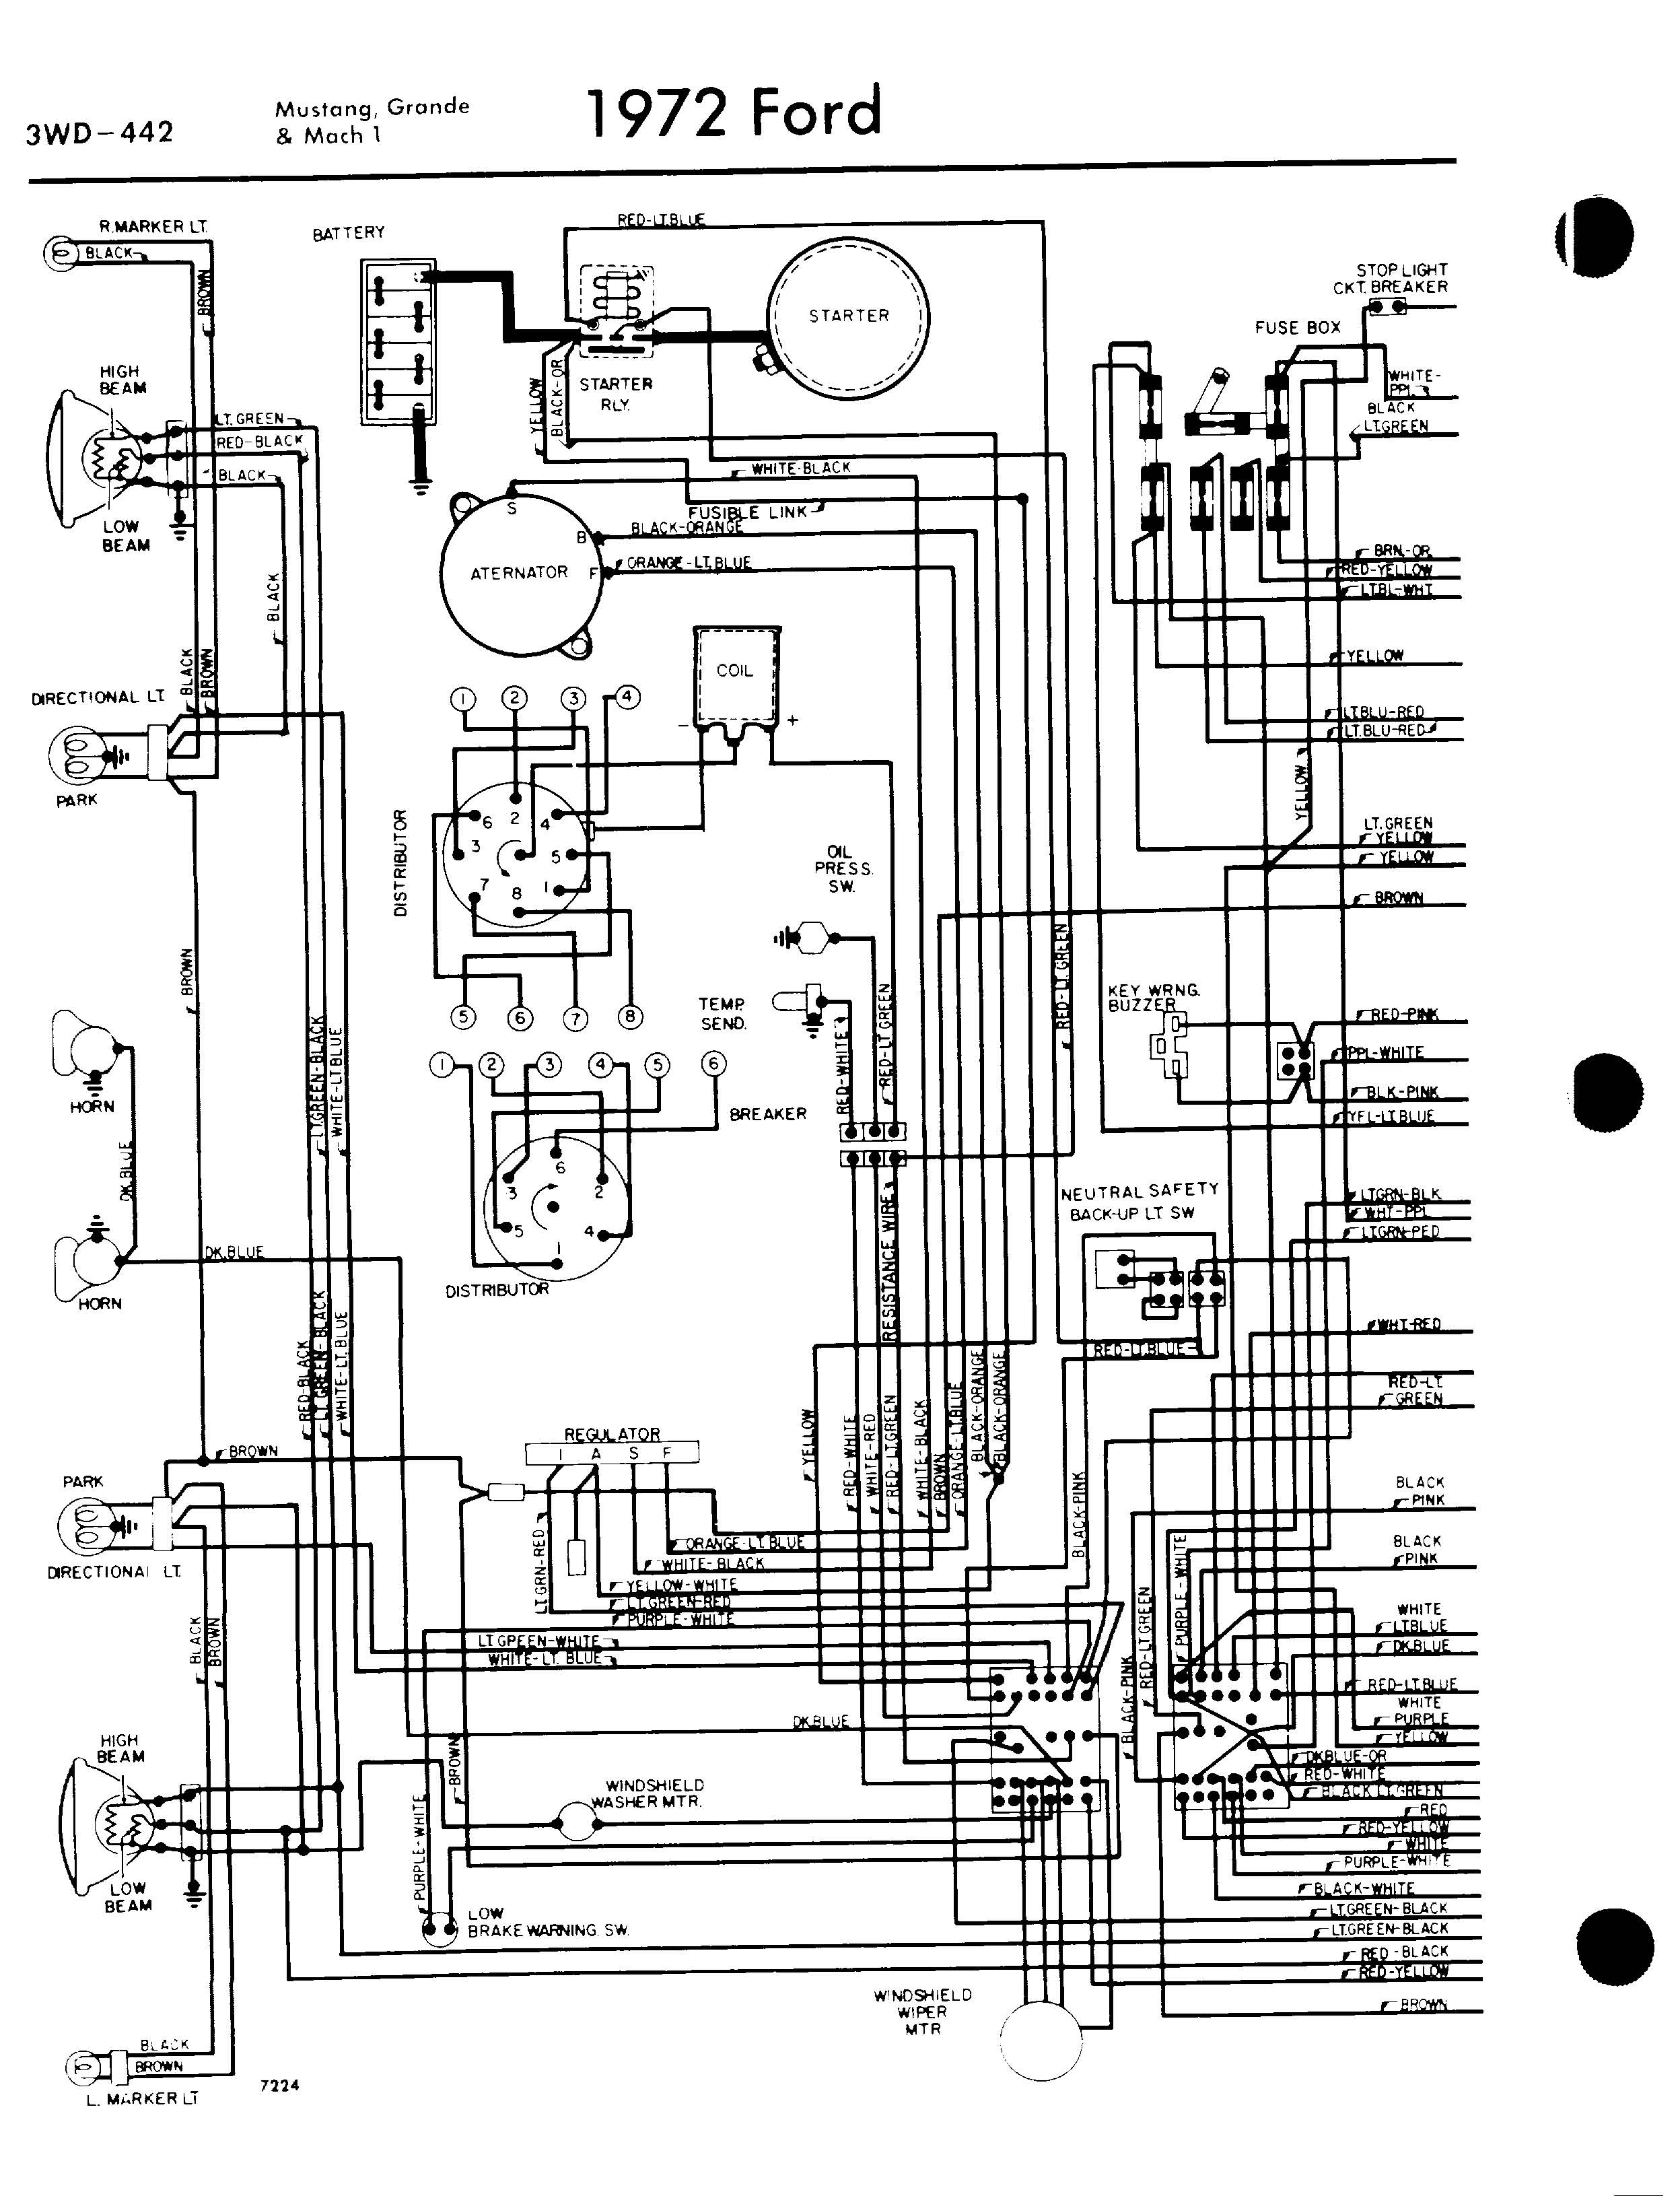 wiring diagram ignition coil resistor with 6f4e3 Rr Mt on Ford 302 in addition Ford Bronco Ii And Ranger 1983 1988 also 6f4e3 Rr Mt moreover Fd Ignition Coil Wiring Help Please 650594 as well 2006 Chevy Impala 3 9 Engine Diagram.